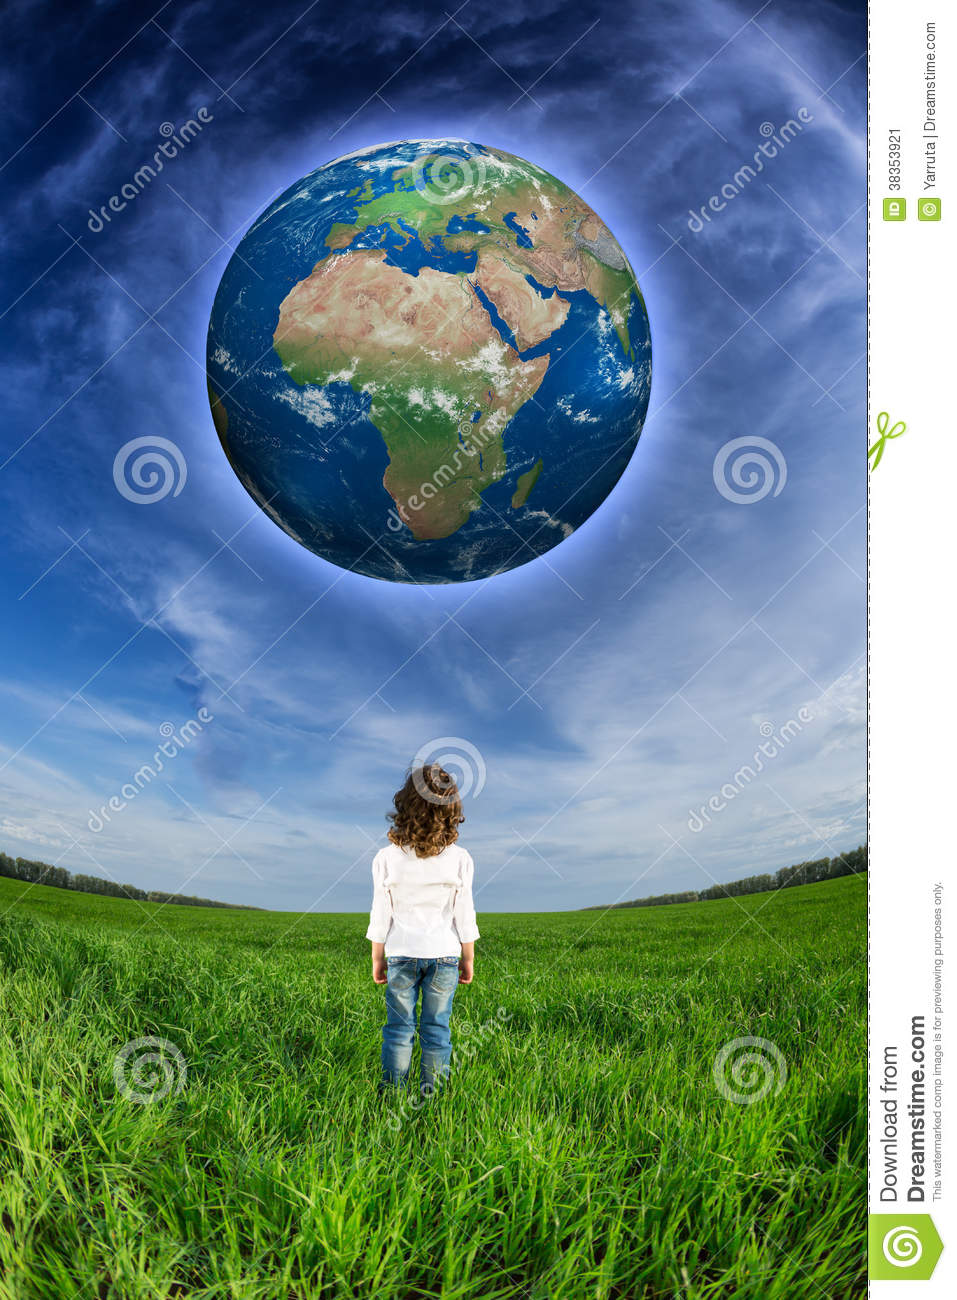 looking at other planet earth -#main